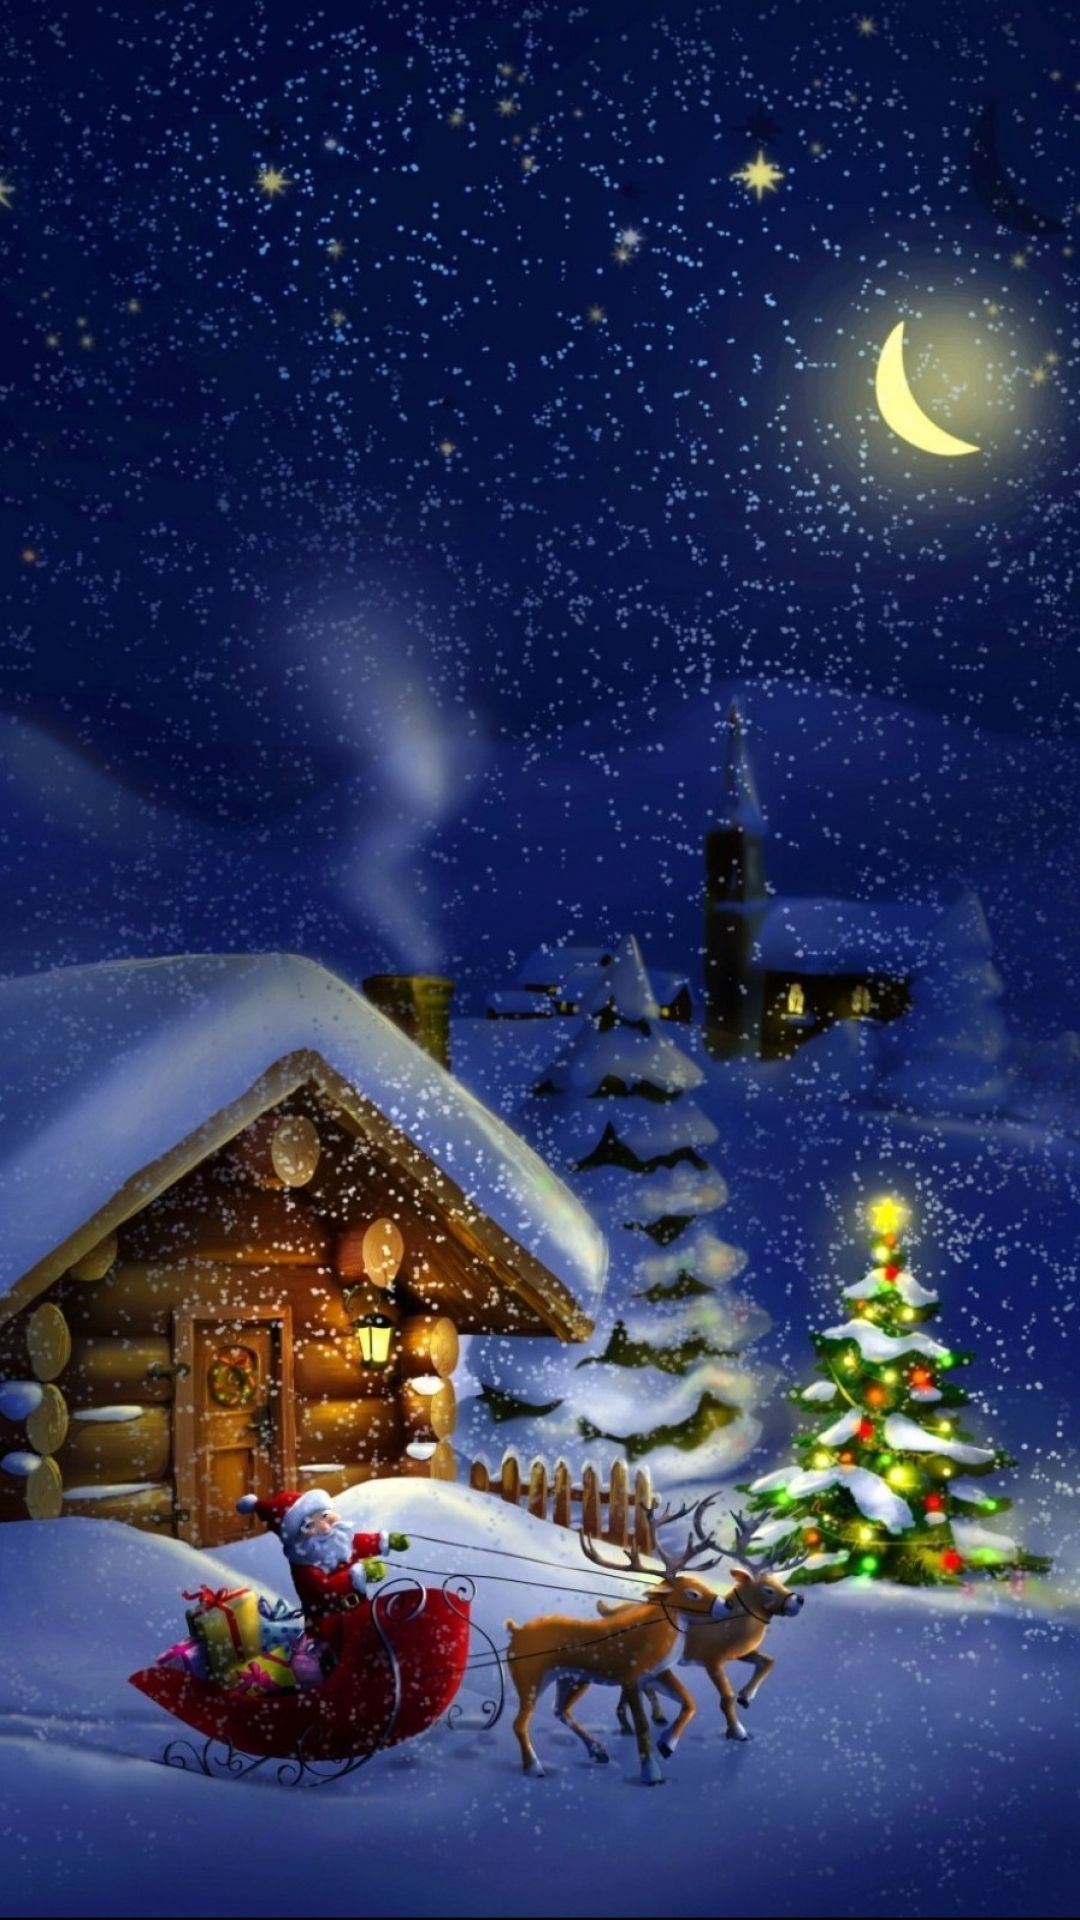 Christmas iPhone Wallpapers - Top Free